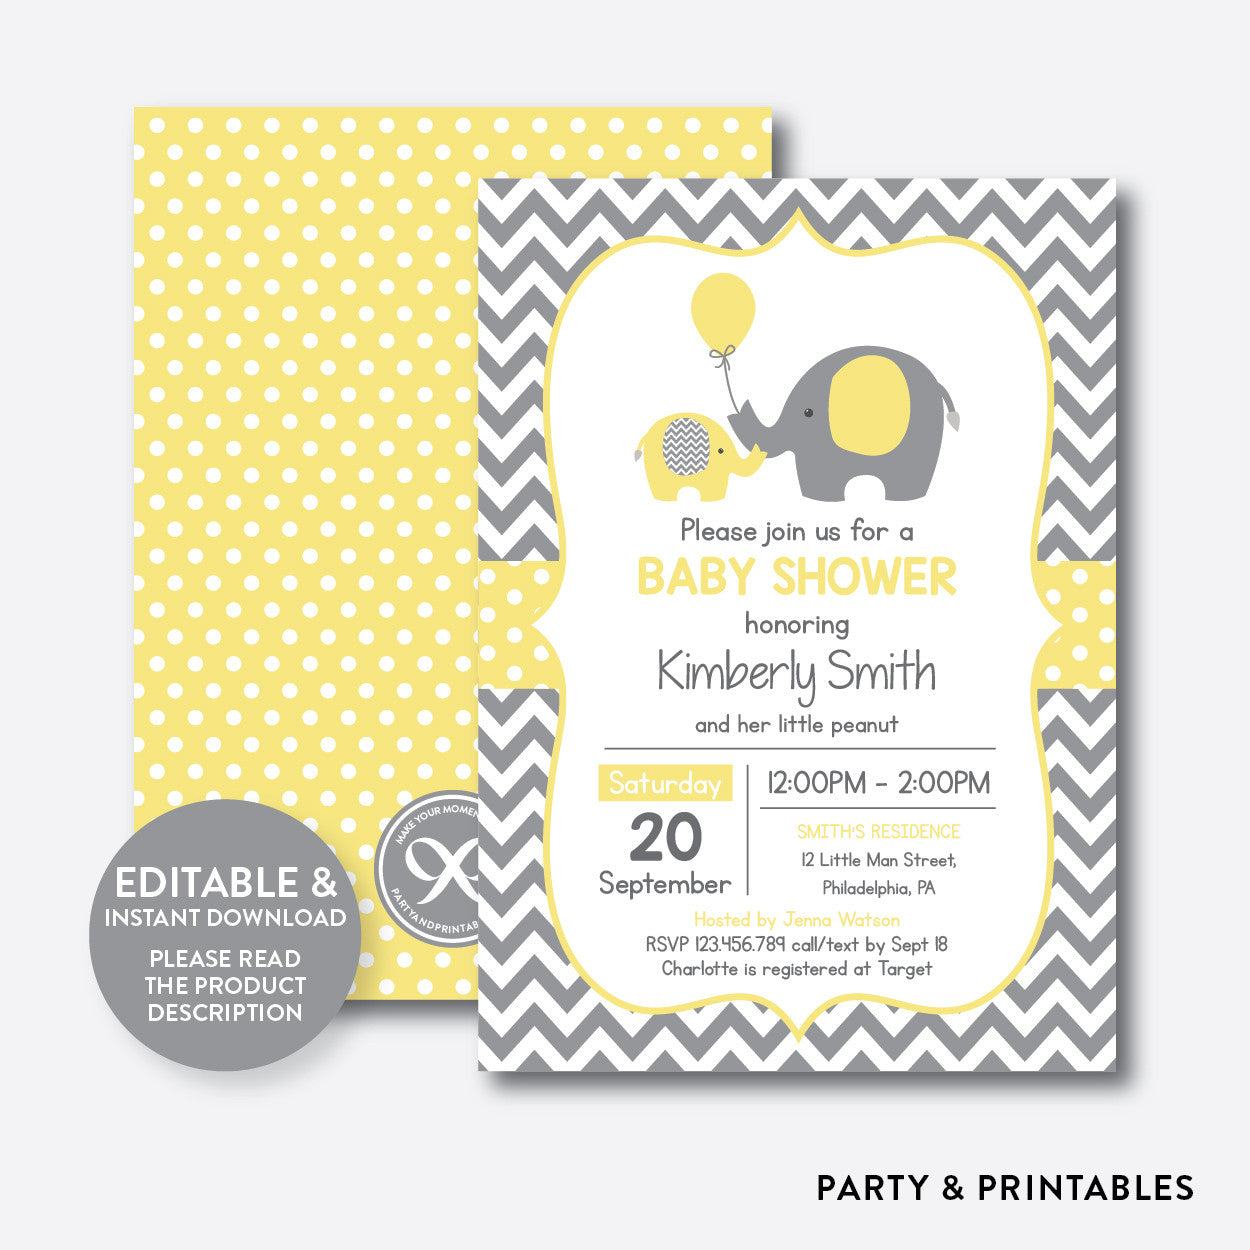 Elephant Baby Shower Invitation / Editable / Instant Download (SBS.37), invitation - Party and Printables